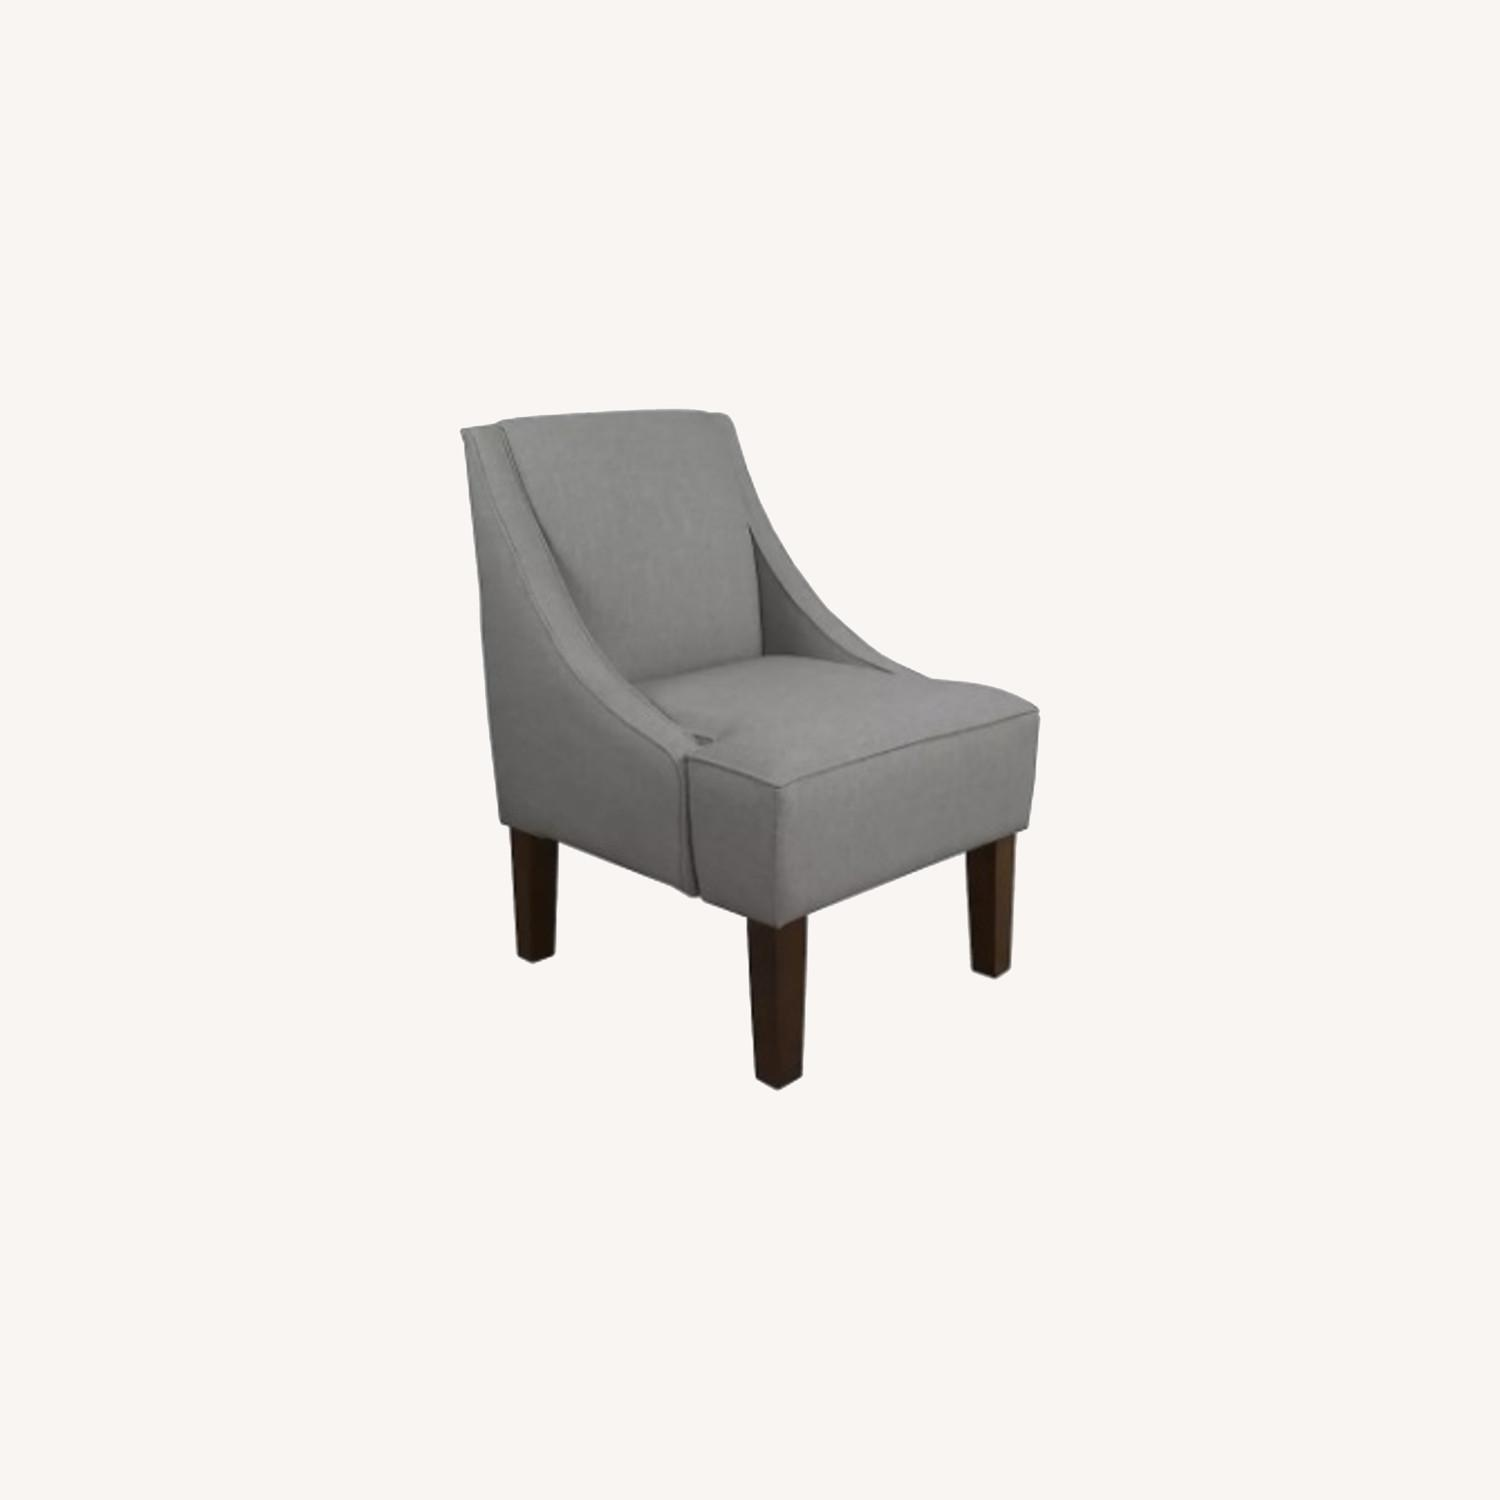 Gray Lounge Accent Chair - image-0